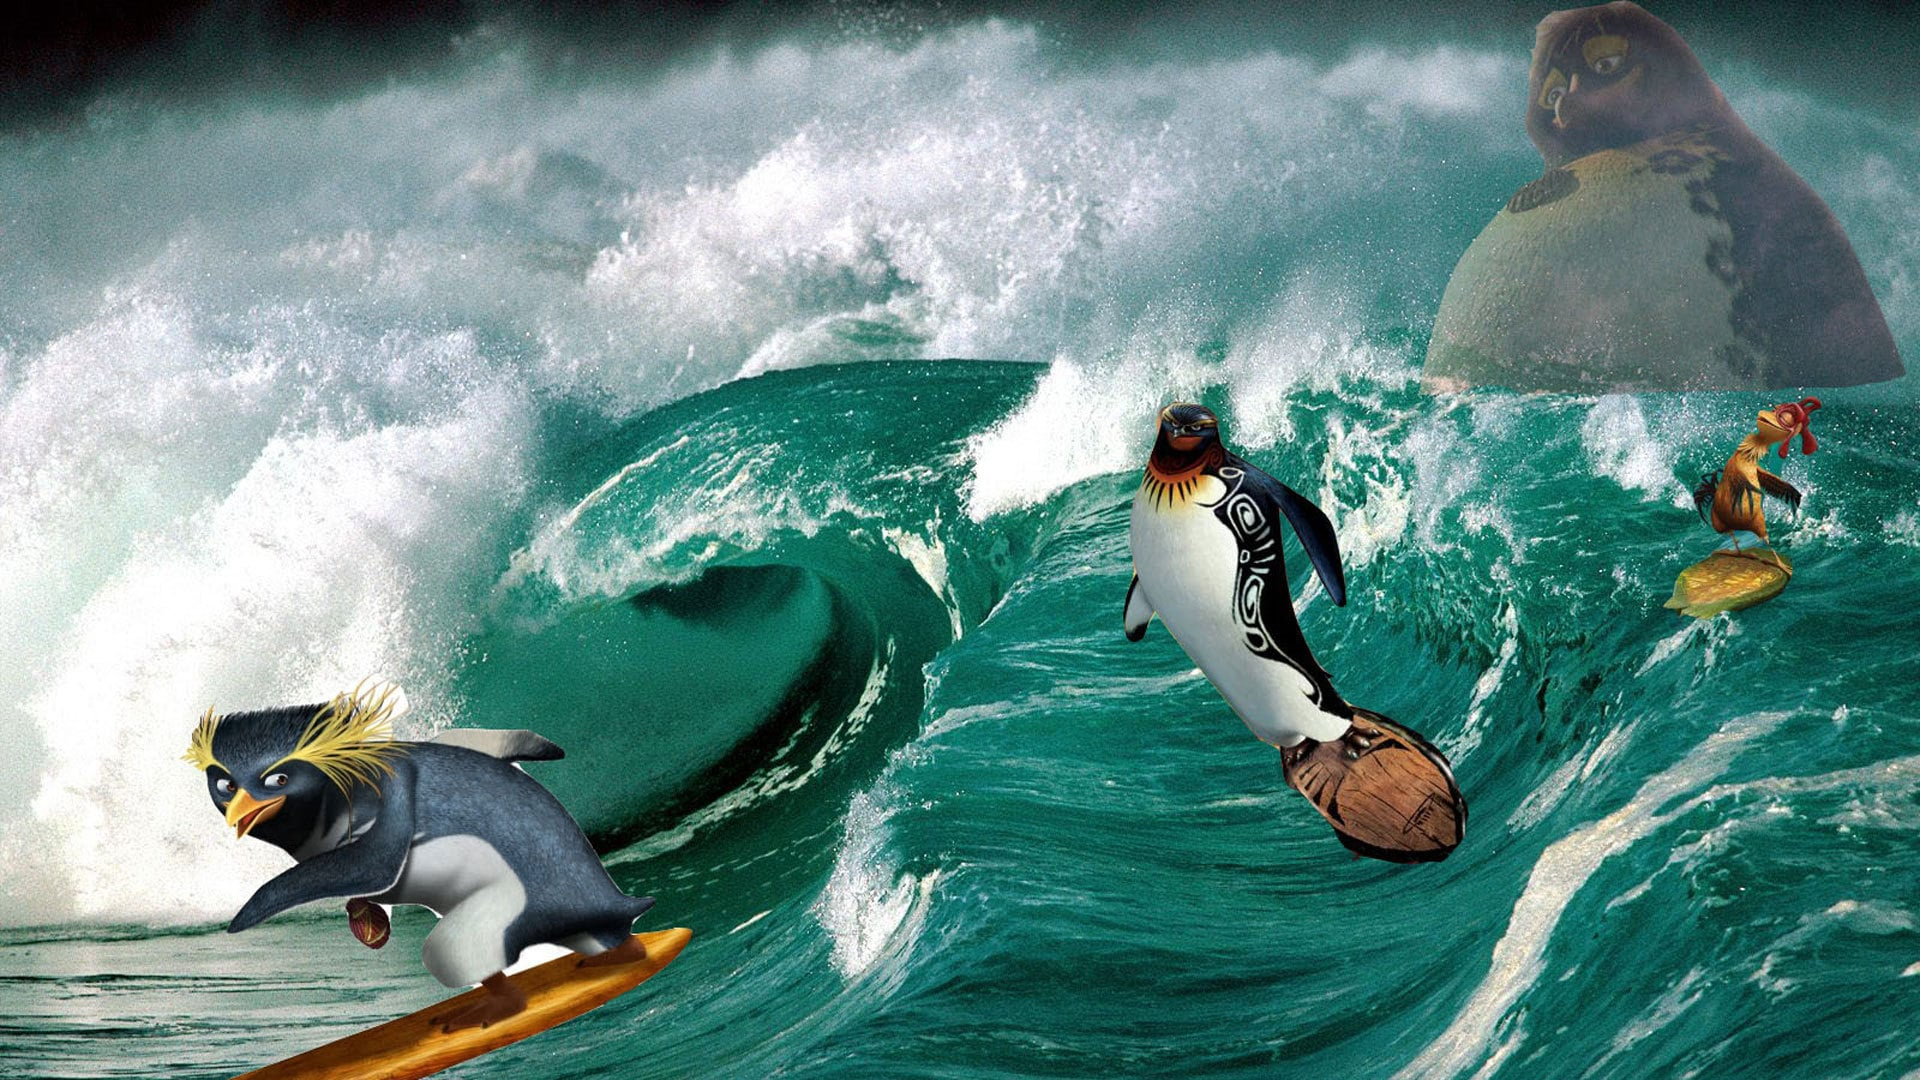 Surfing penguins - Cody, The Big Z and Chicken Joe in Surf's Up (2007)